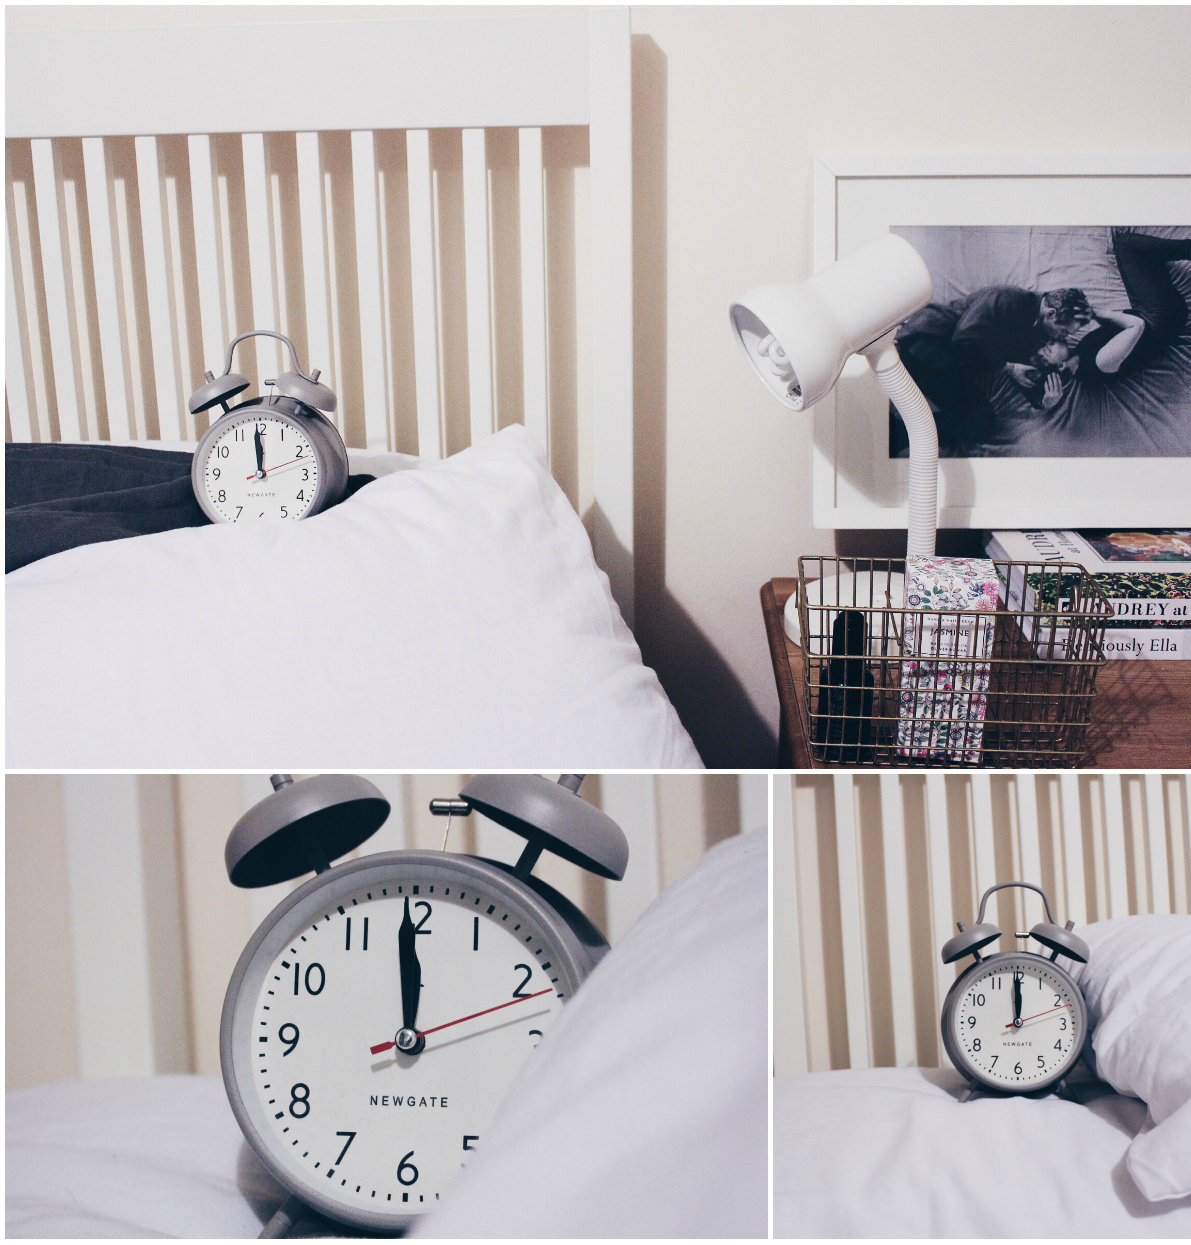 newgate alarm clock grey